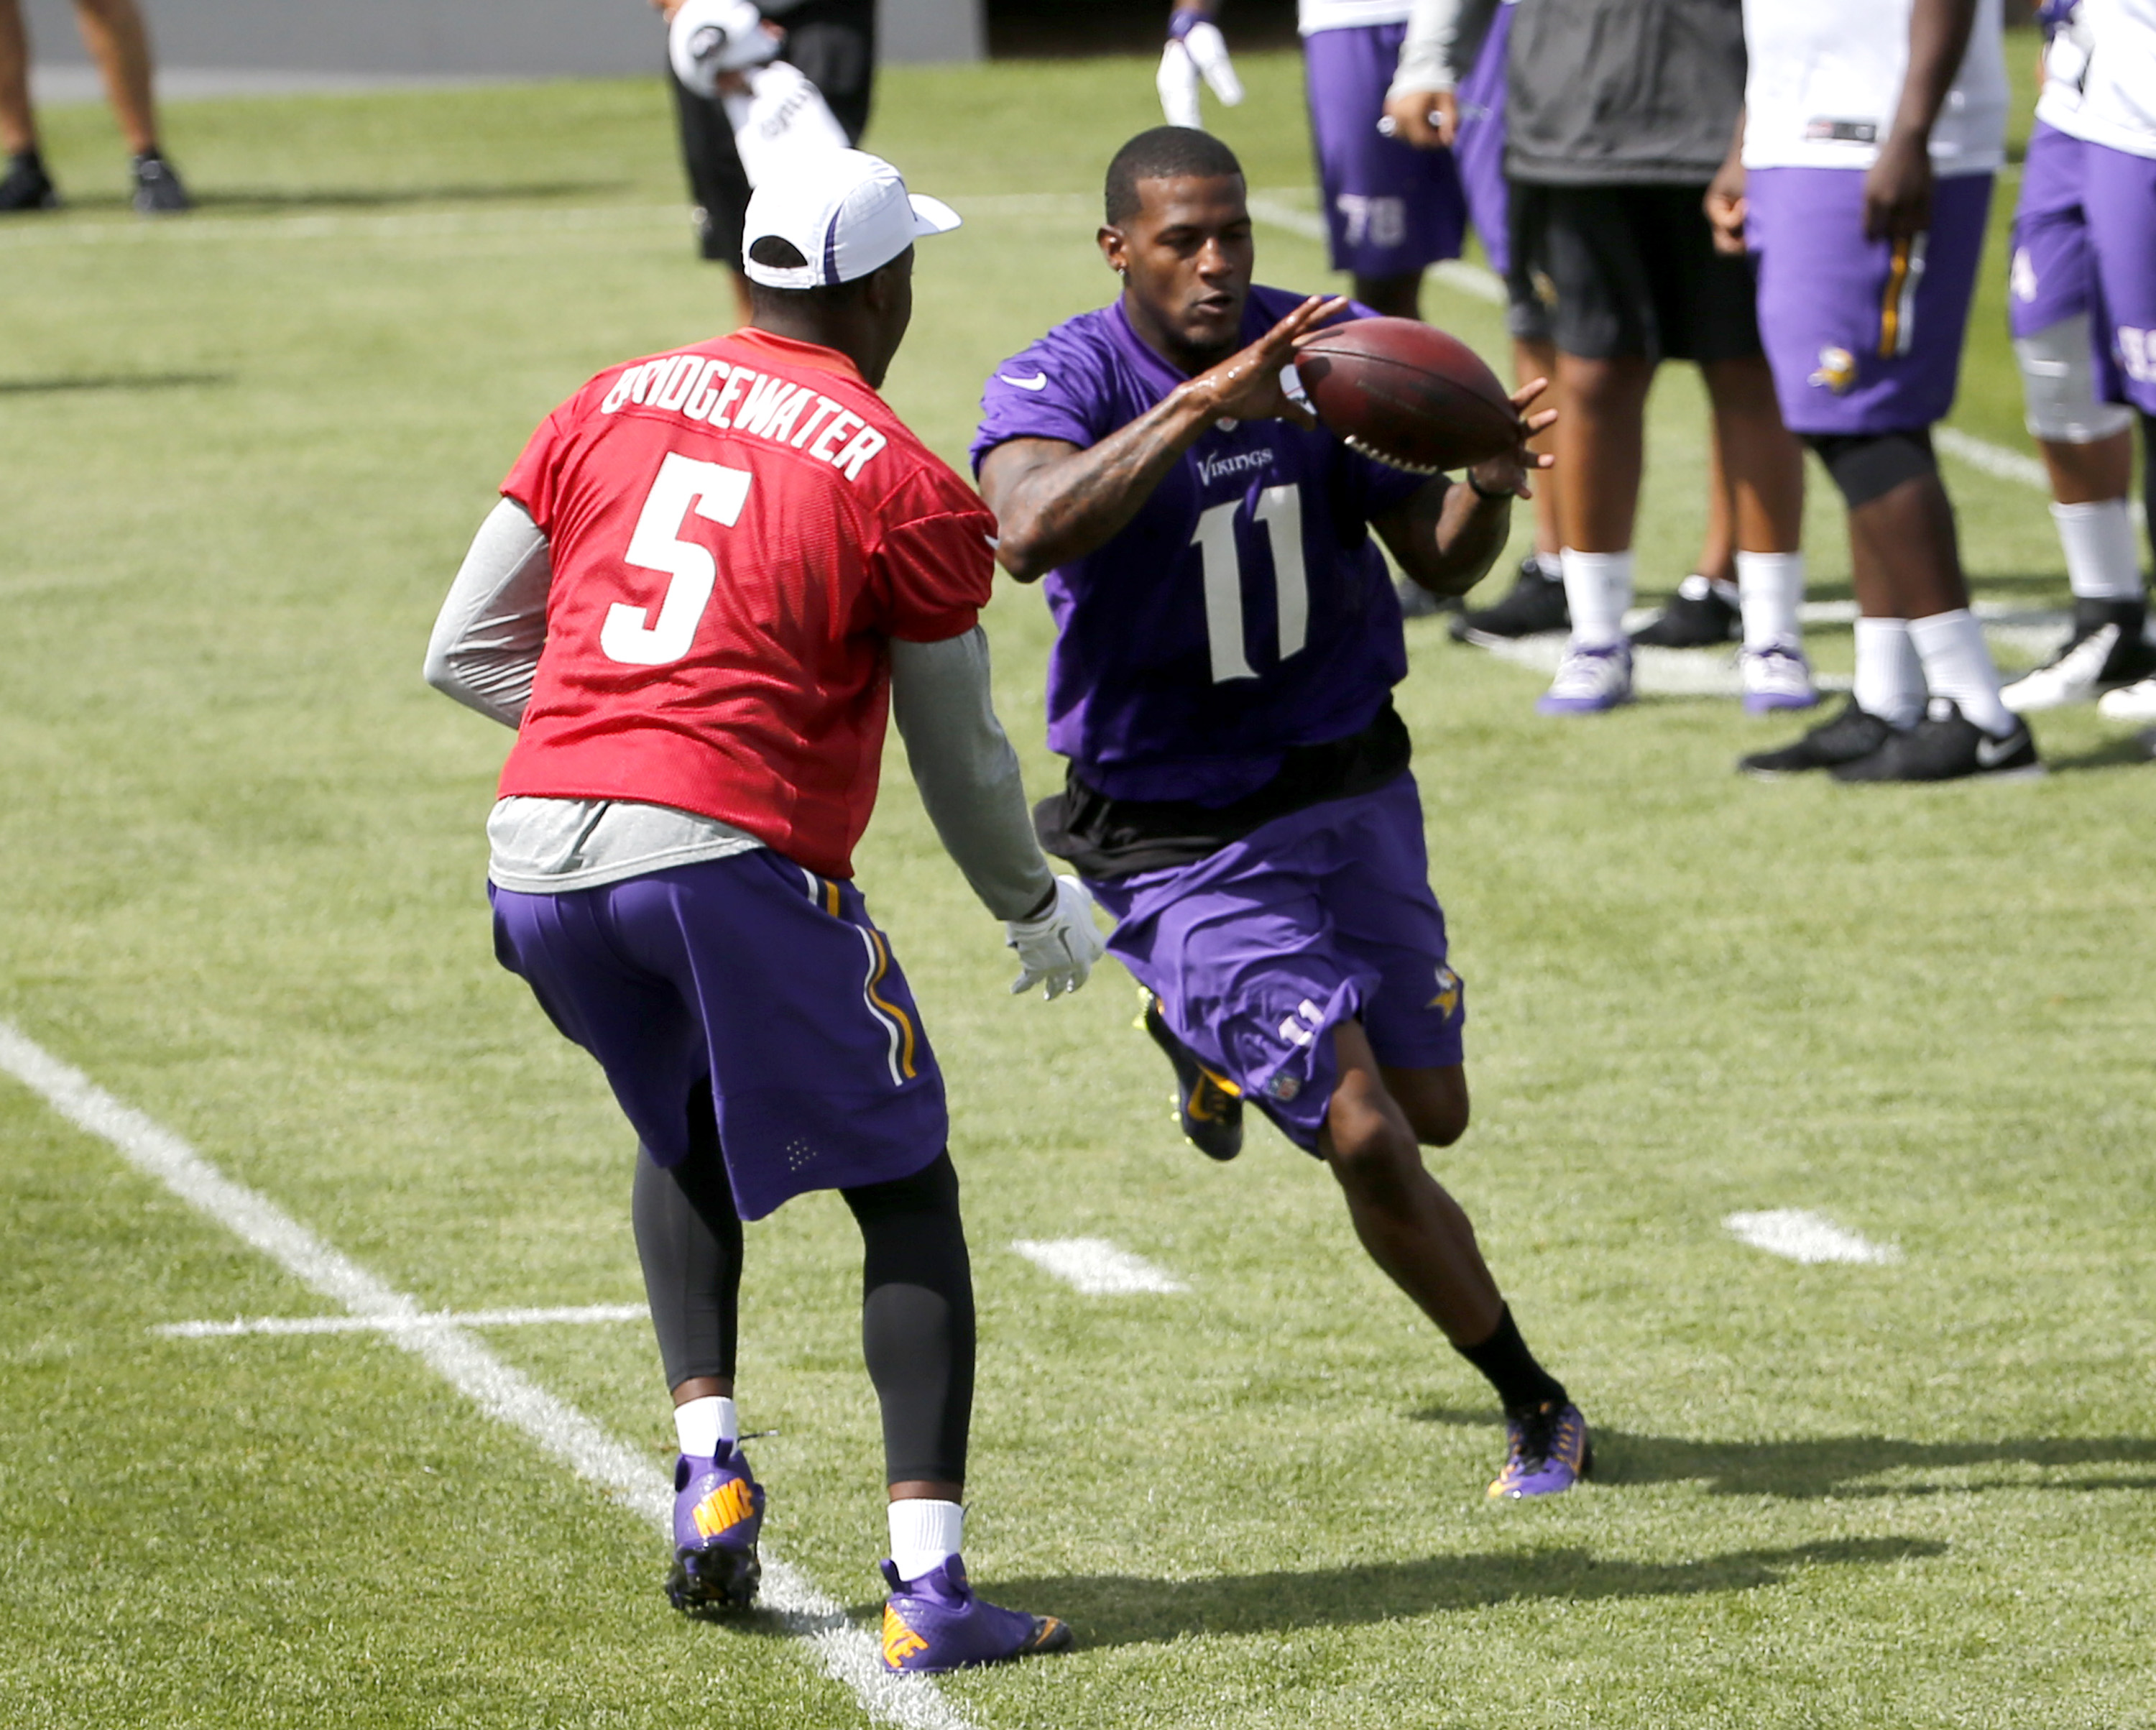 Minnesota Vikings quarterback Teddy Bridgewater (5) flips the ball to wide receiver Mike Wallace (11) on an end-around during practice at an NFL football training camp on the campus of Minnesota State University, Sunday, July 26, 2015, in Mankato, Minn. (